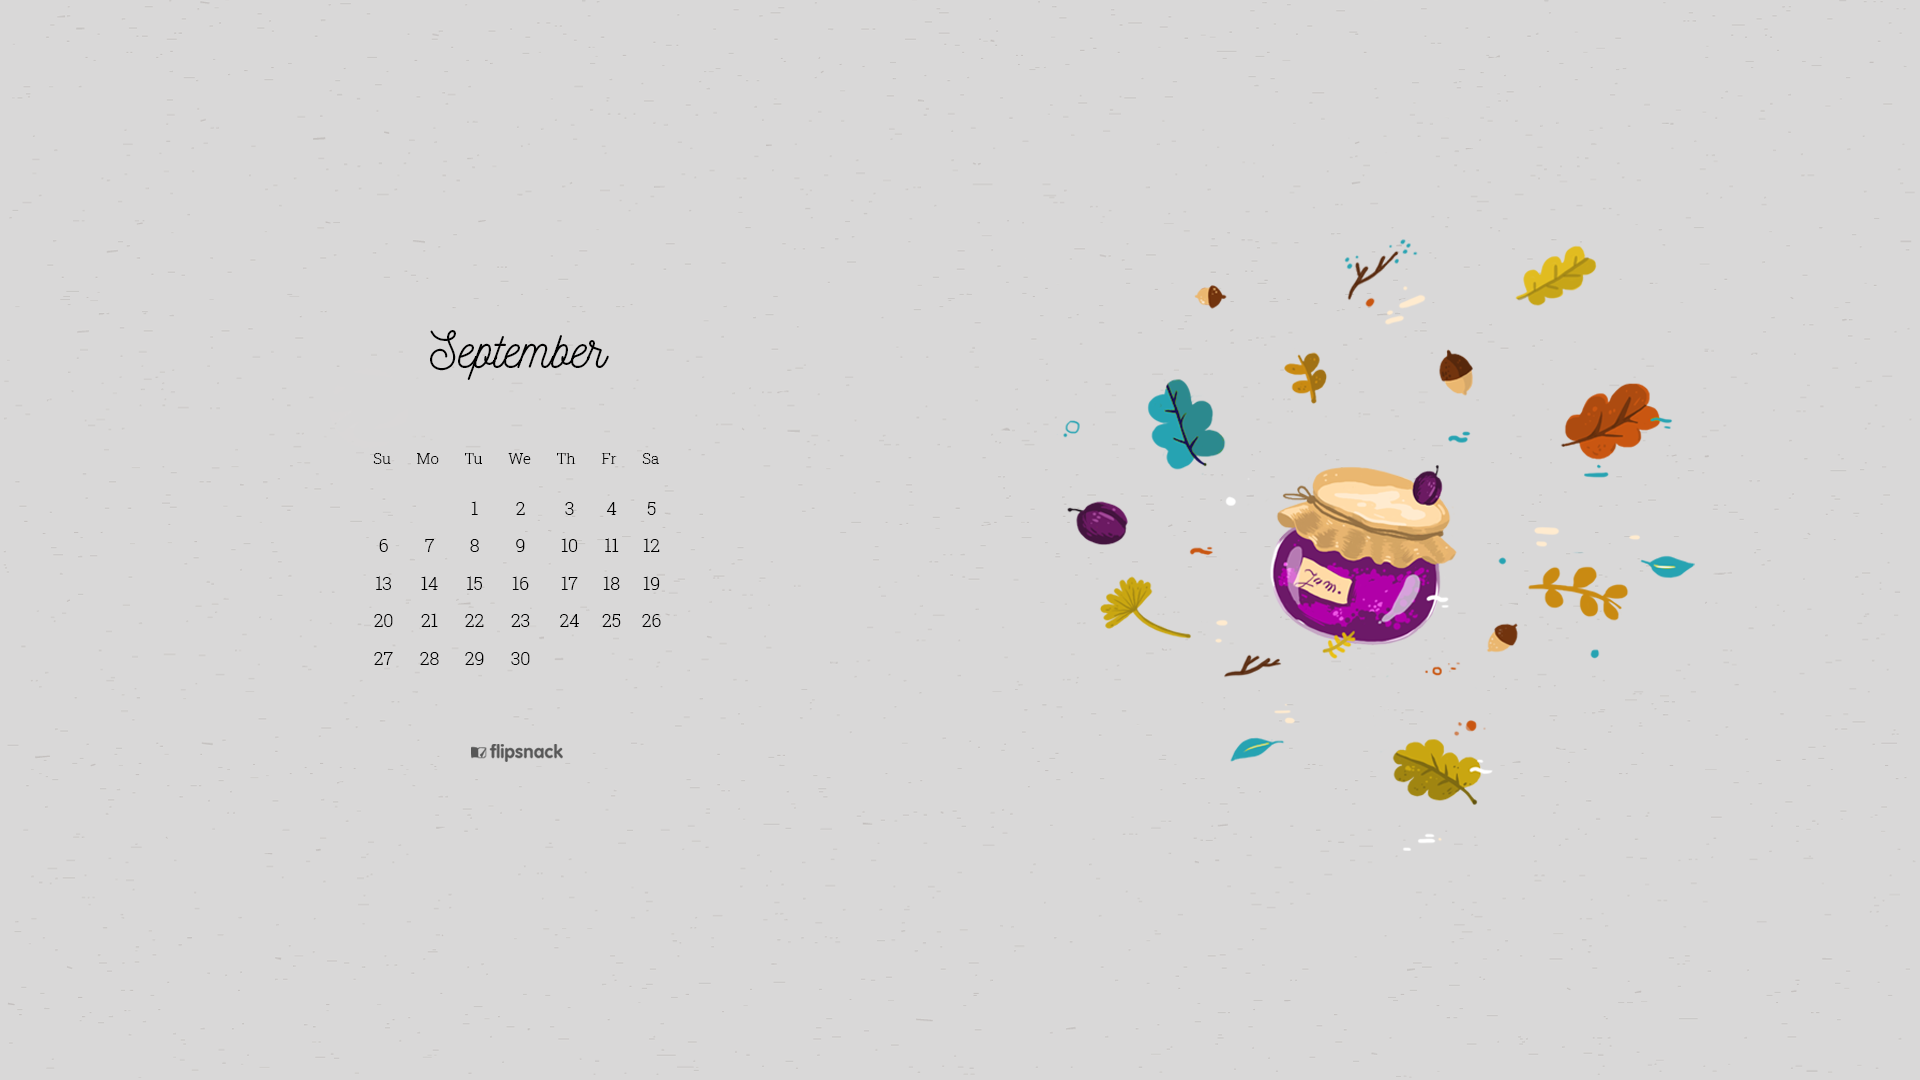 September wallpaper design